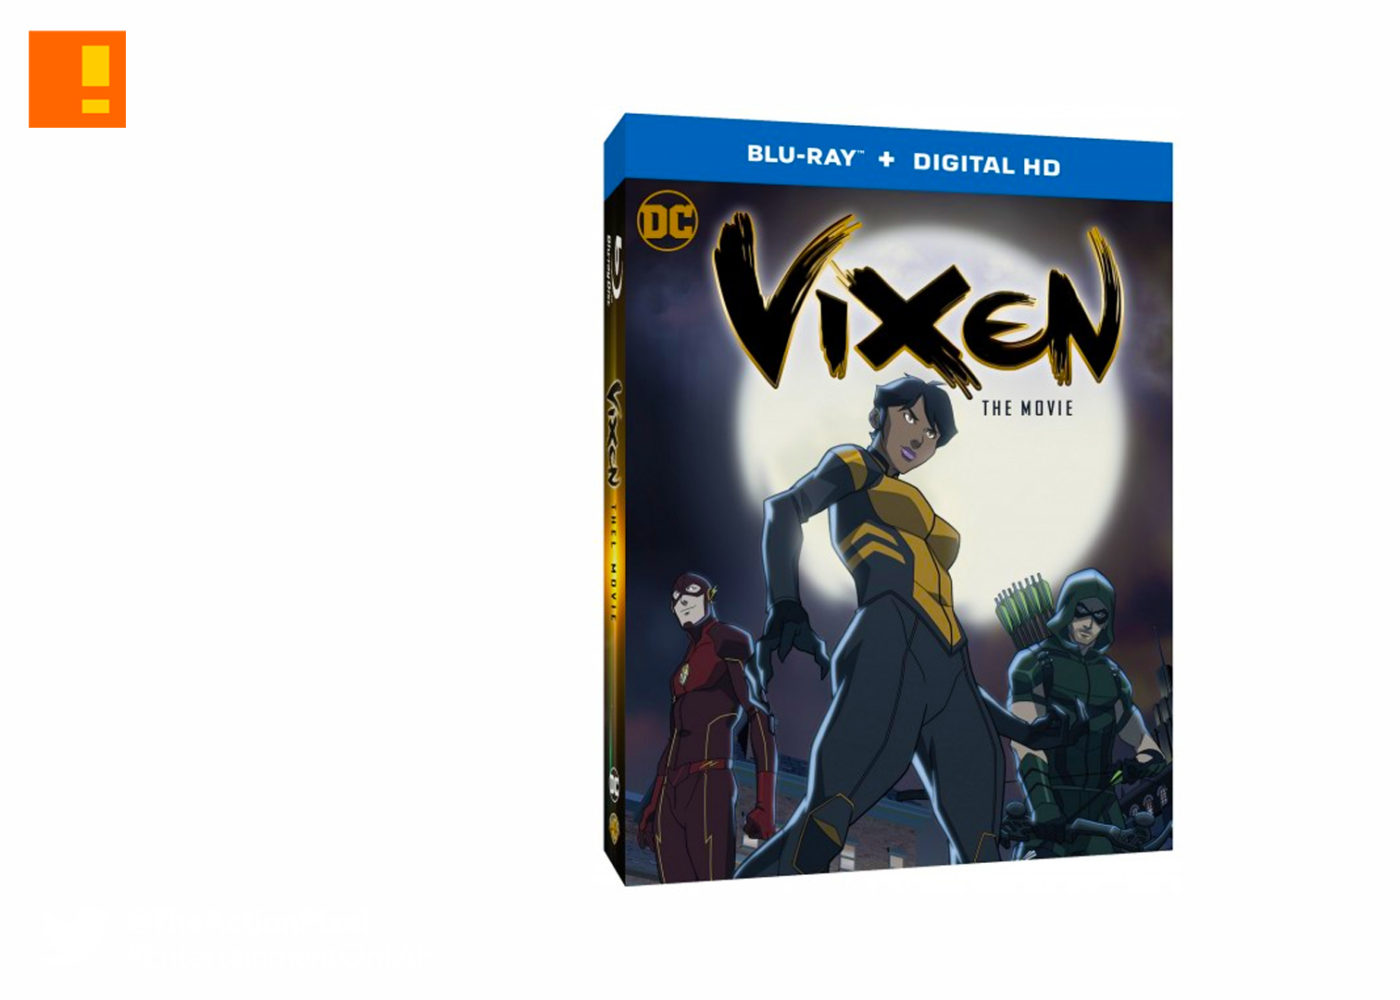 vixen: the movie, vixen, dc comics,dc entertainment, arrow, cw, cw seed, the flash, the cw network, blu-ray, entertainment on tap, the action pixel